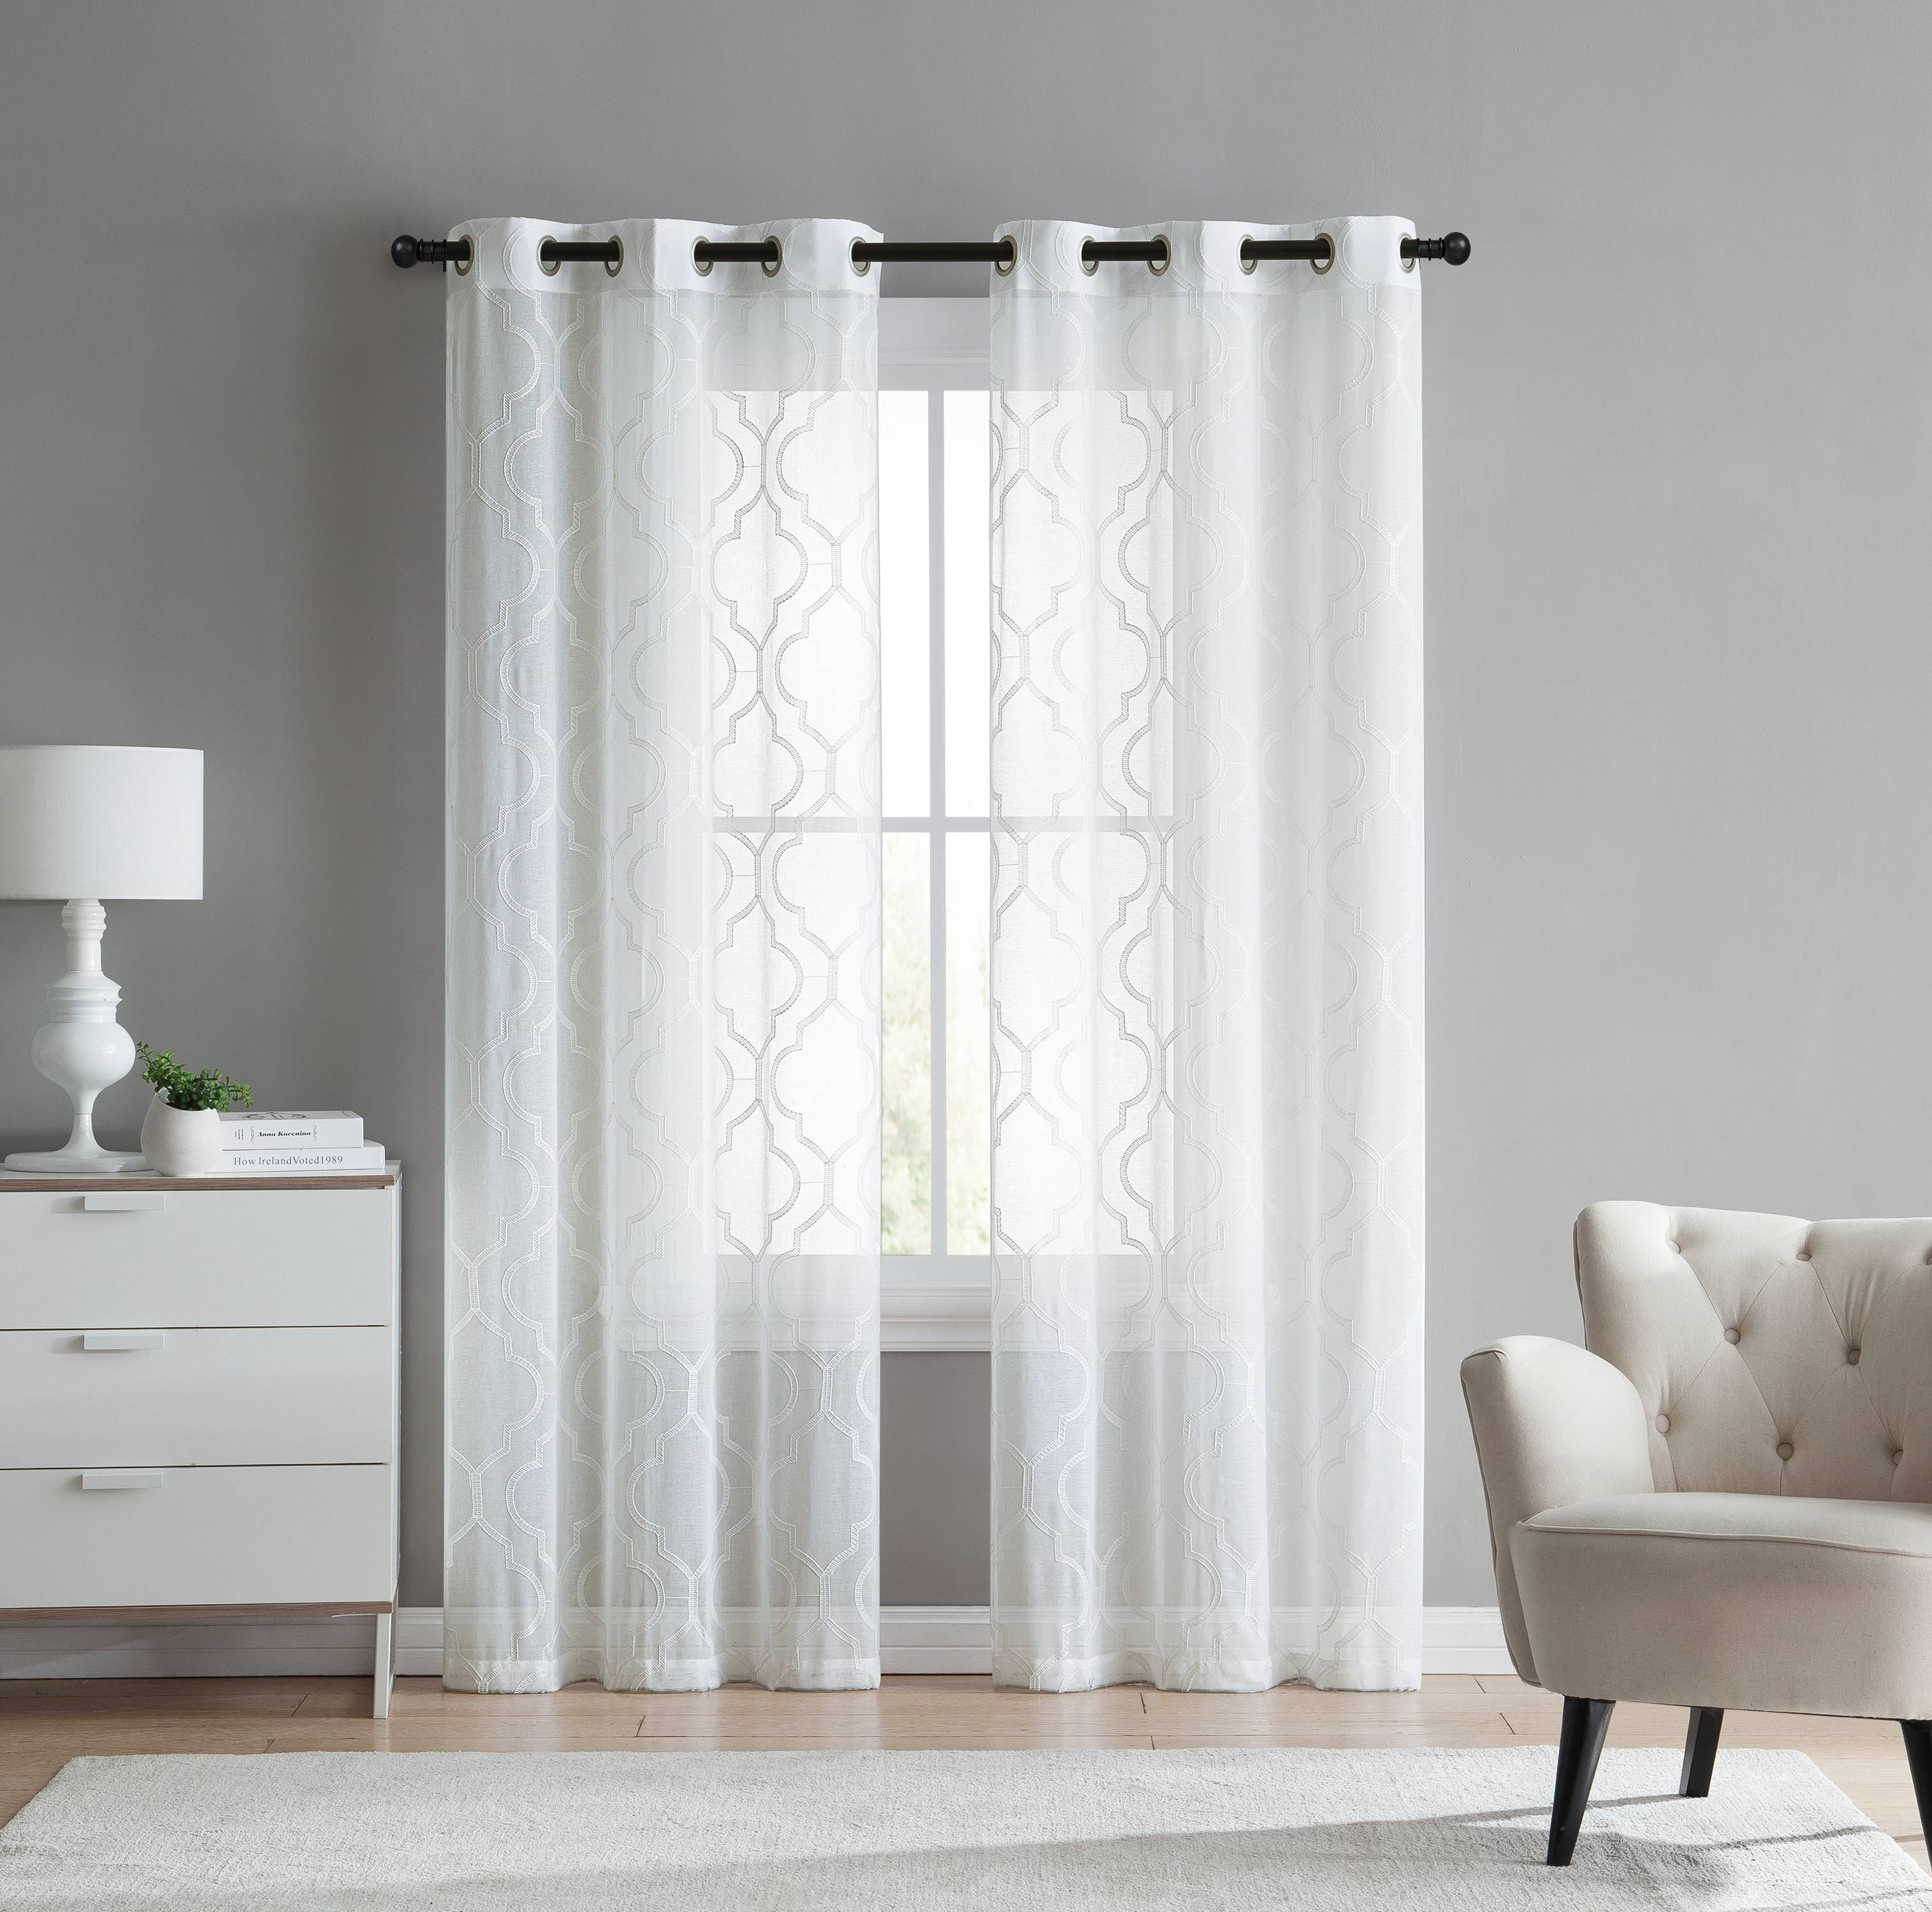 2 Pack: VCNY Home Charlotte Semi Sheer Trellis Grommet Top Curtain Panels - (White, 96 in. L)